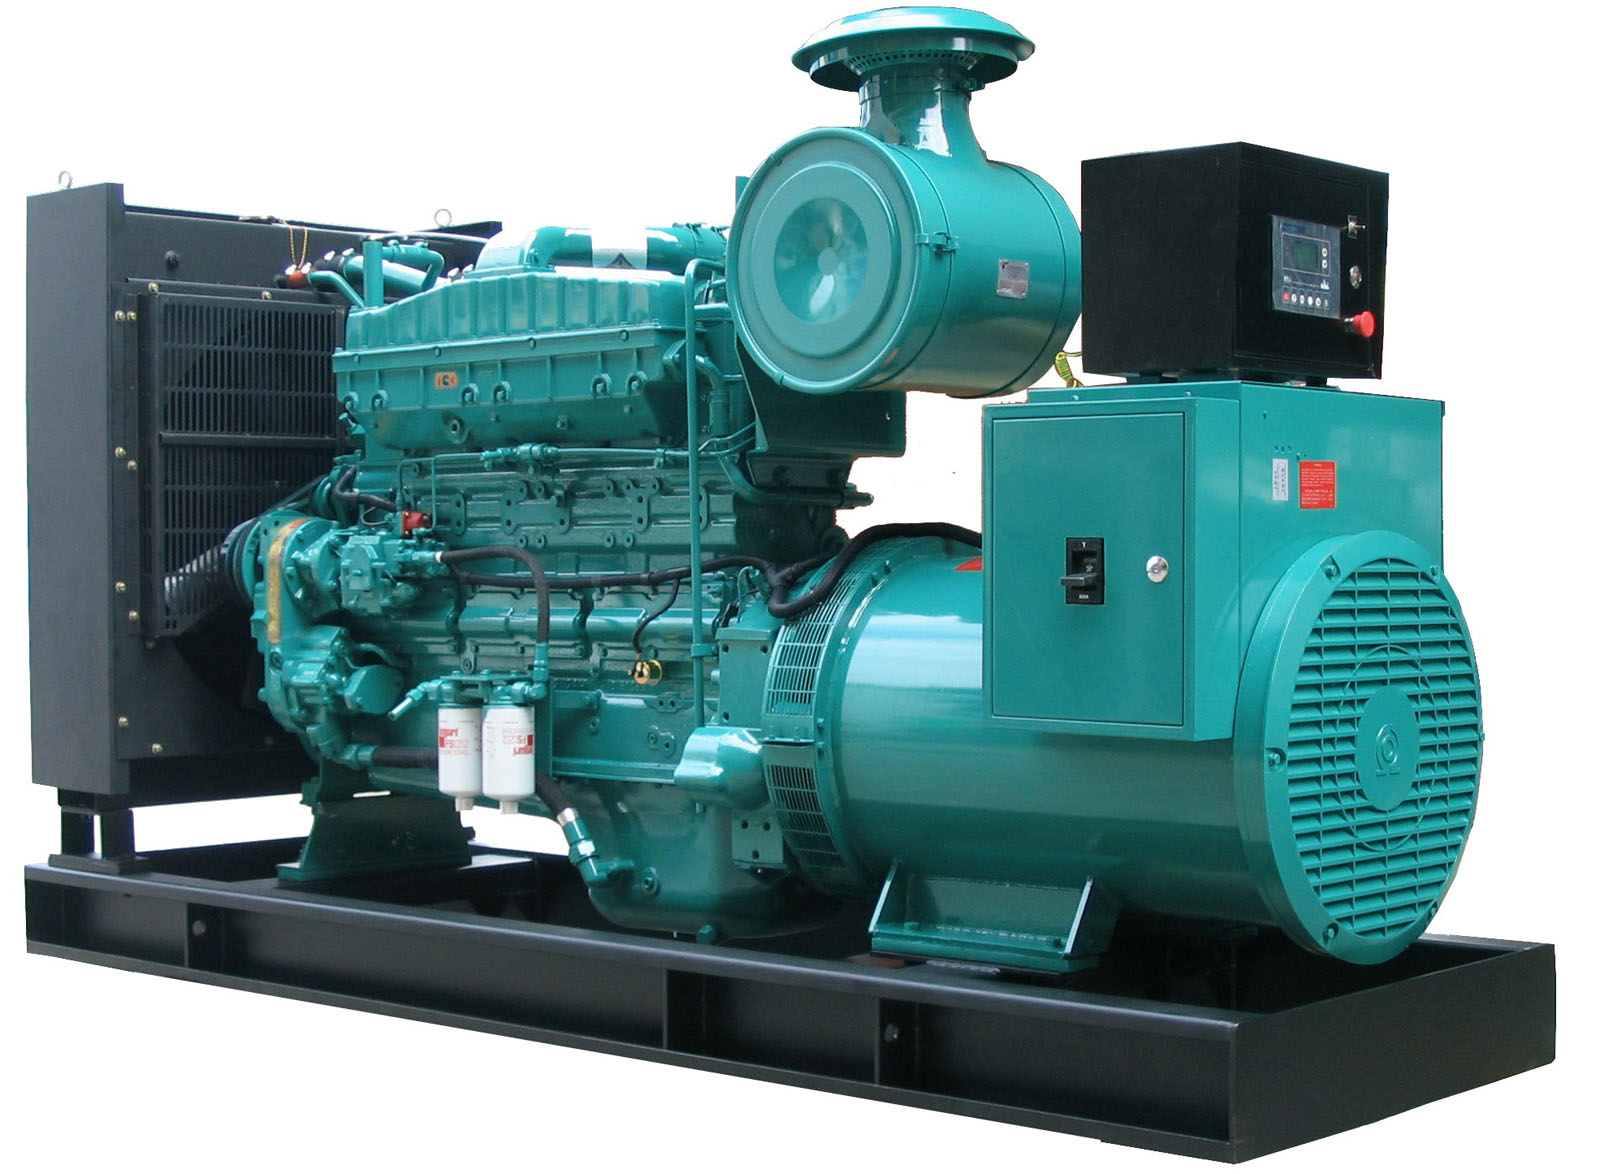 Kirloskar diesel generator maintenance manual